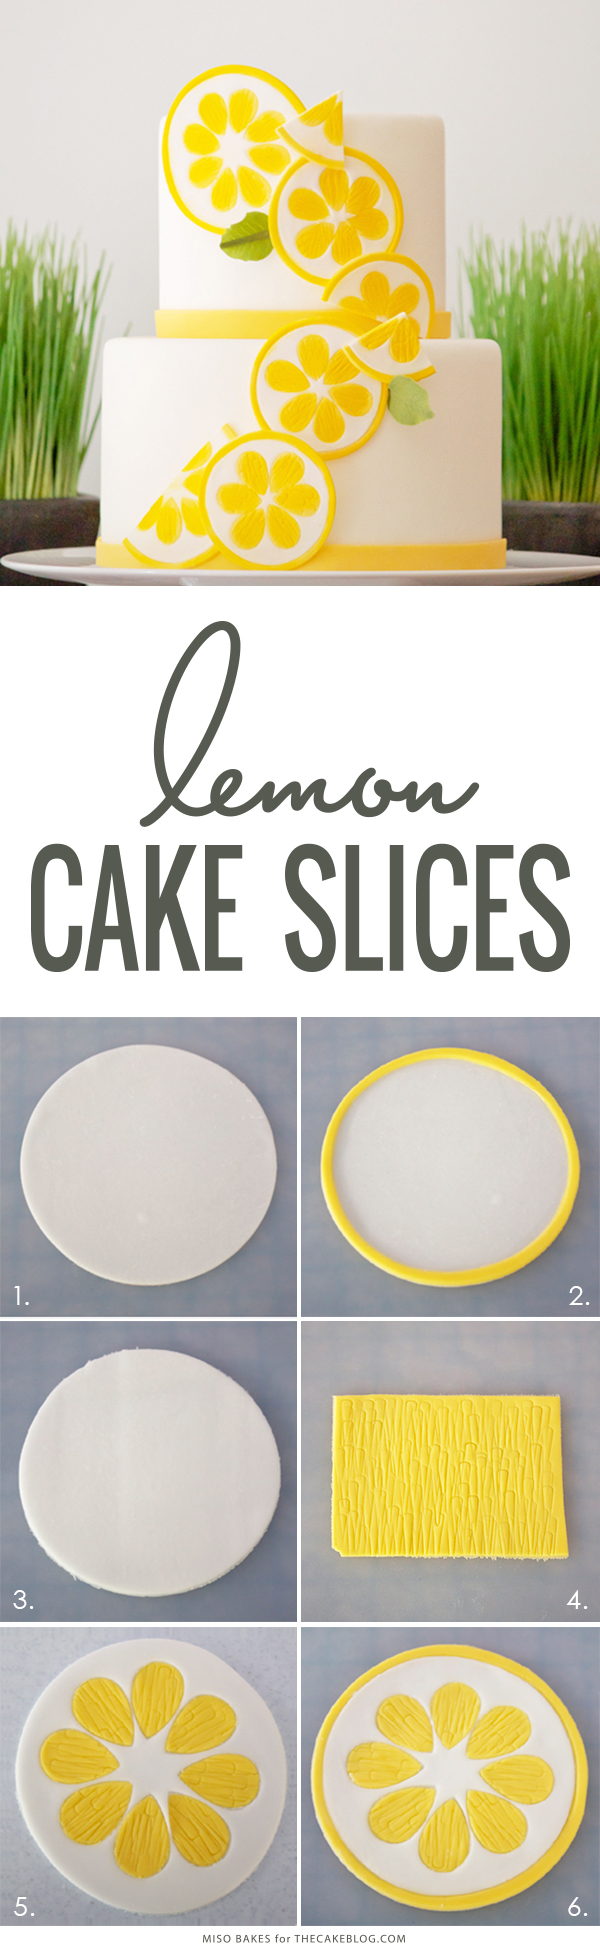 DIY Lemon Slices | how to make these easy cake and cupcake toppers | by Miso Bakes for TheCakeBlog.com